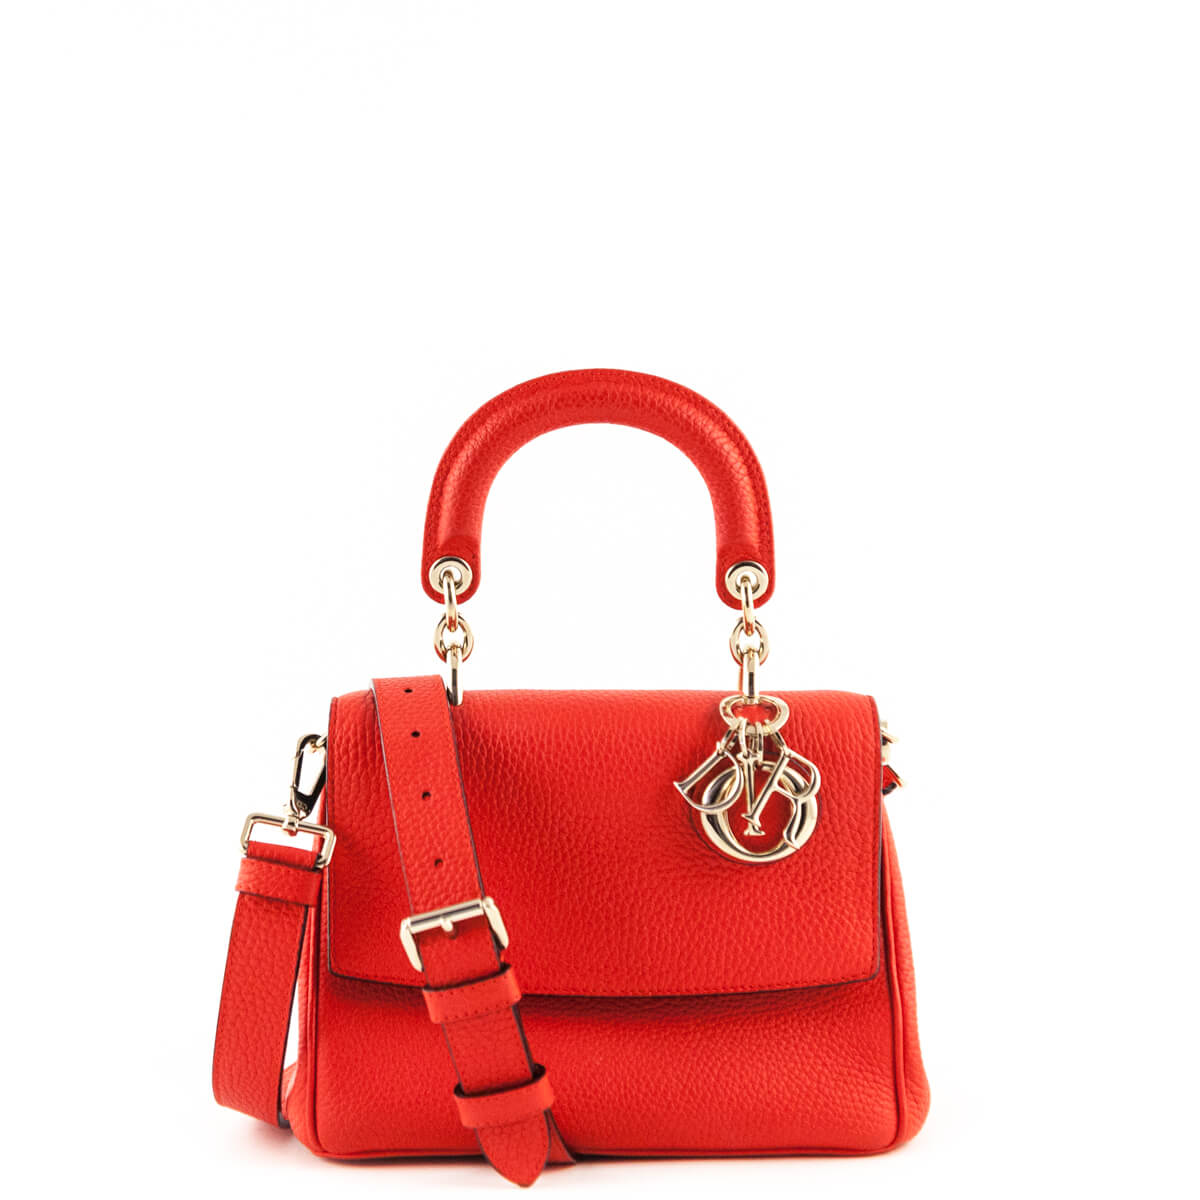 7d7e3c925a16 Dior Red Diorissimo Small Be Dior Flap Bag - LOVE that BAG - Preowned  Authentic Designer ...